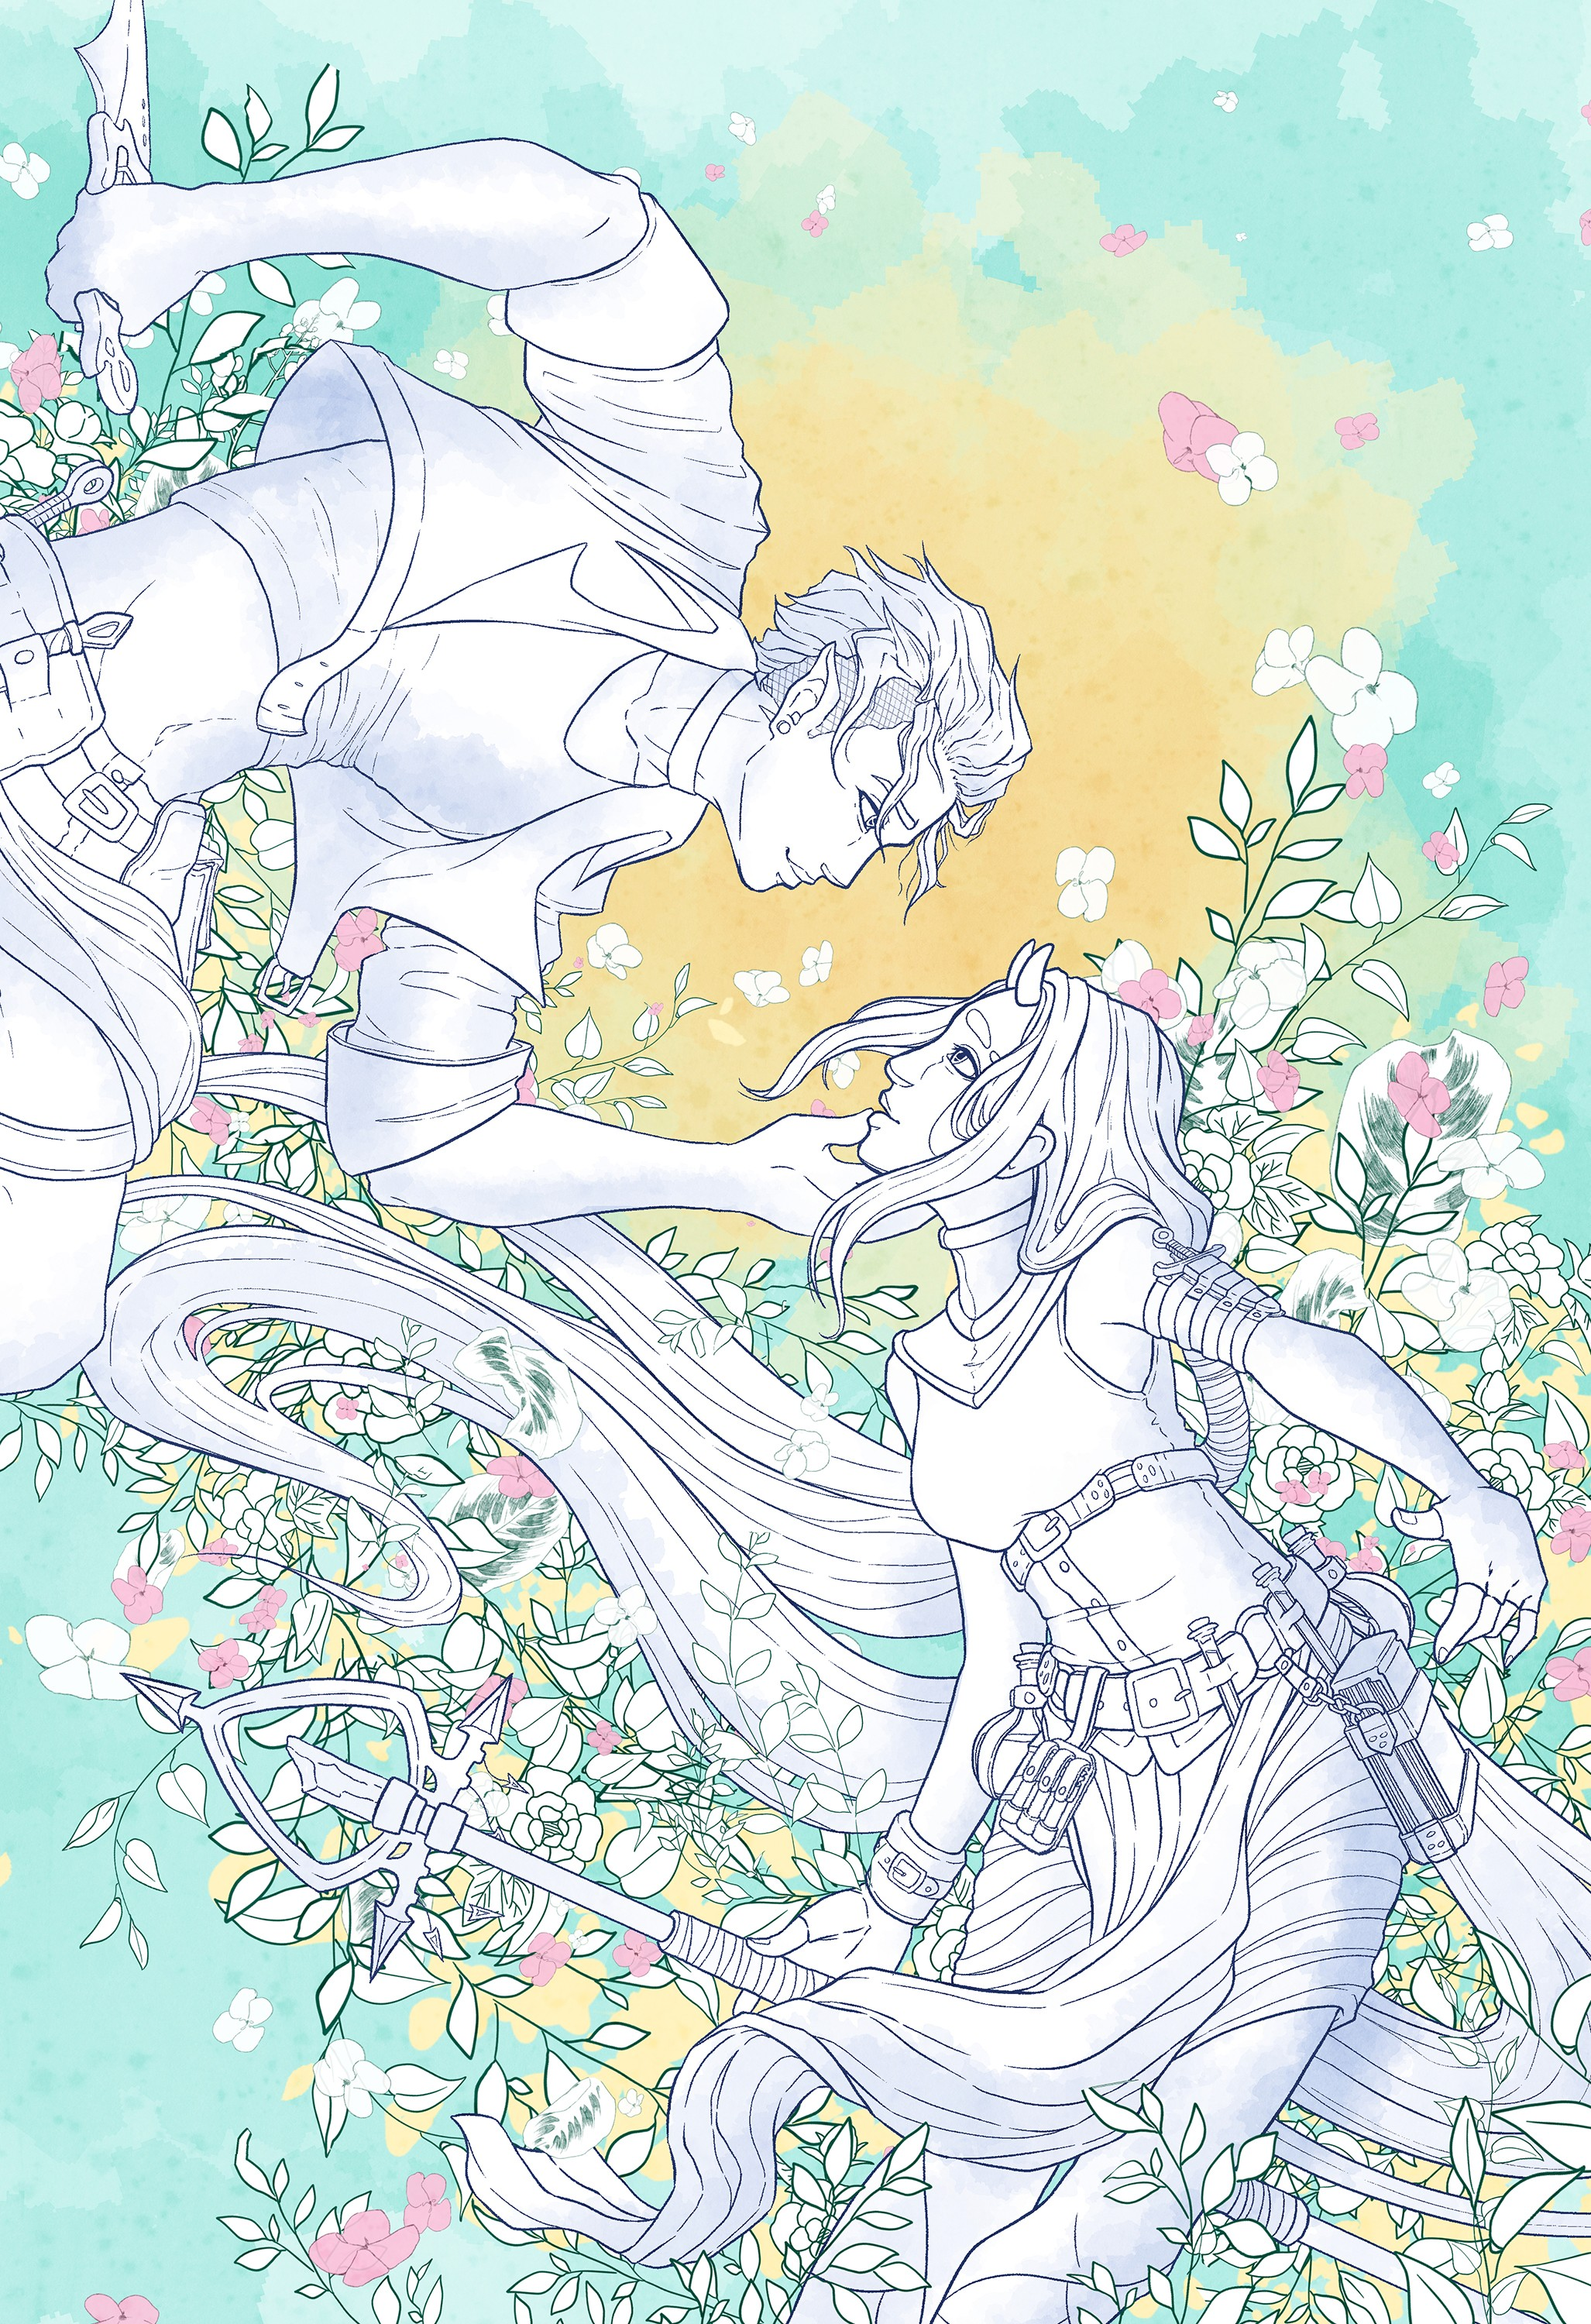 Elf boy gently caressing the face of a demon girl. They are surrounded by by plants. Illustration.